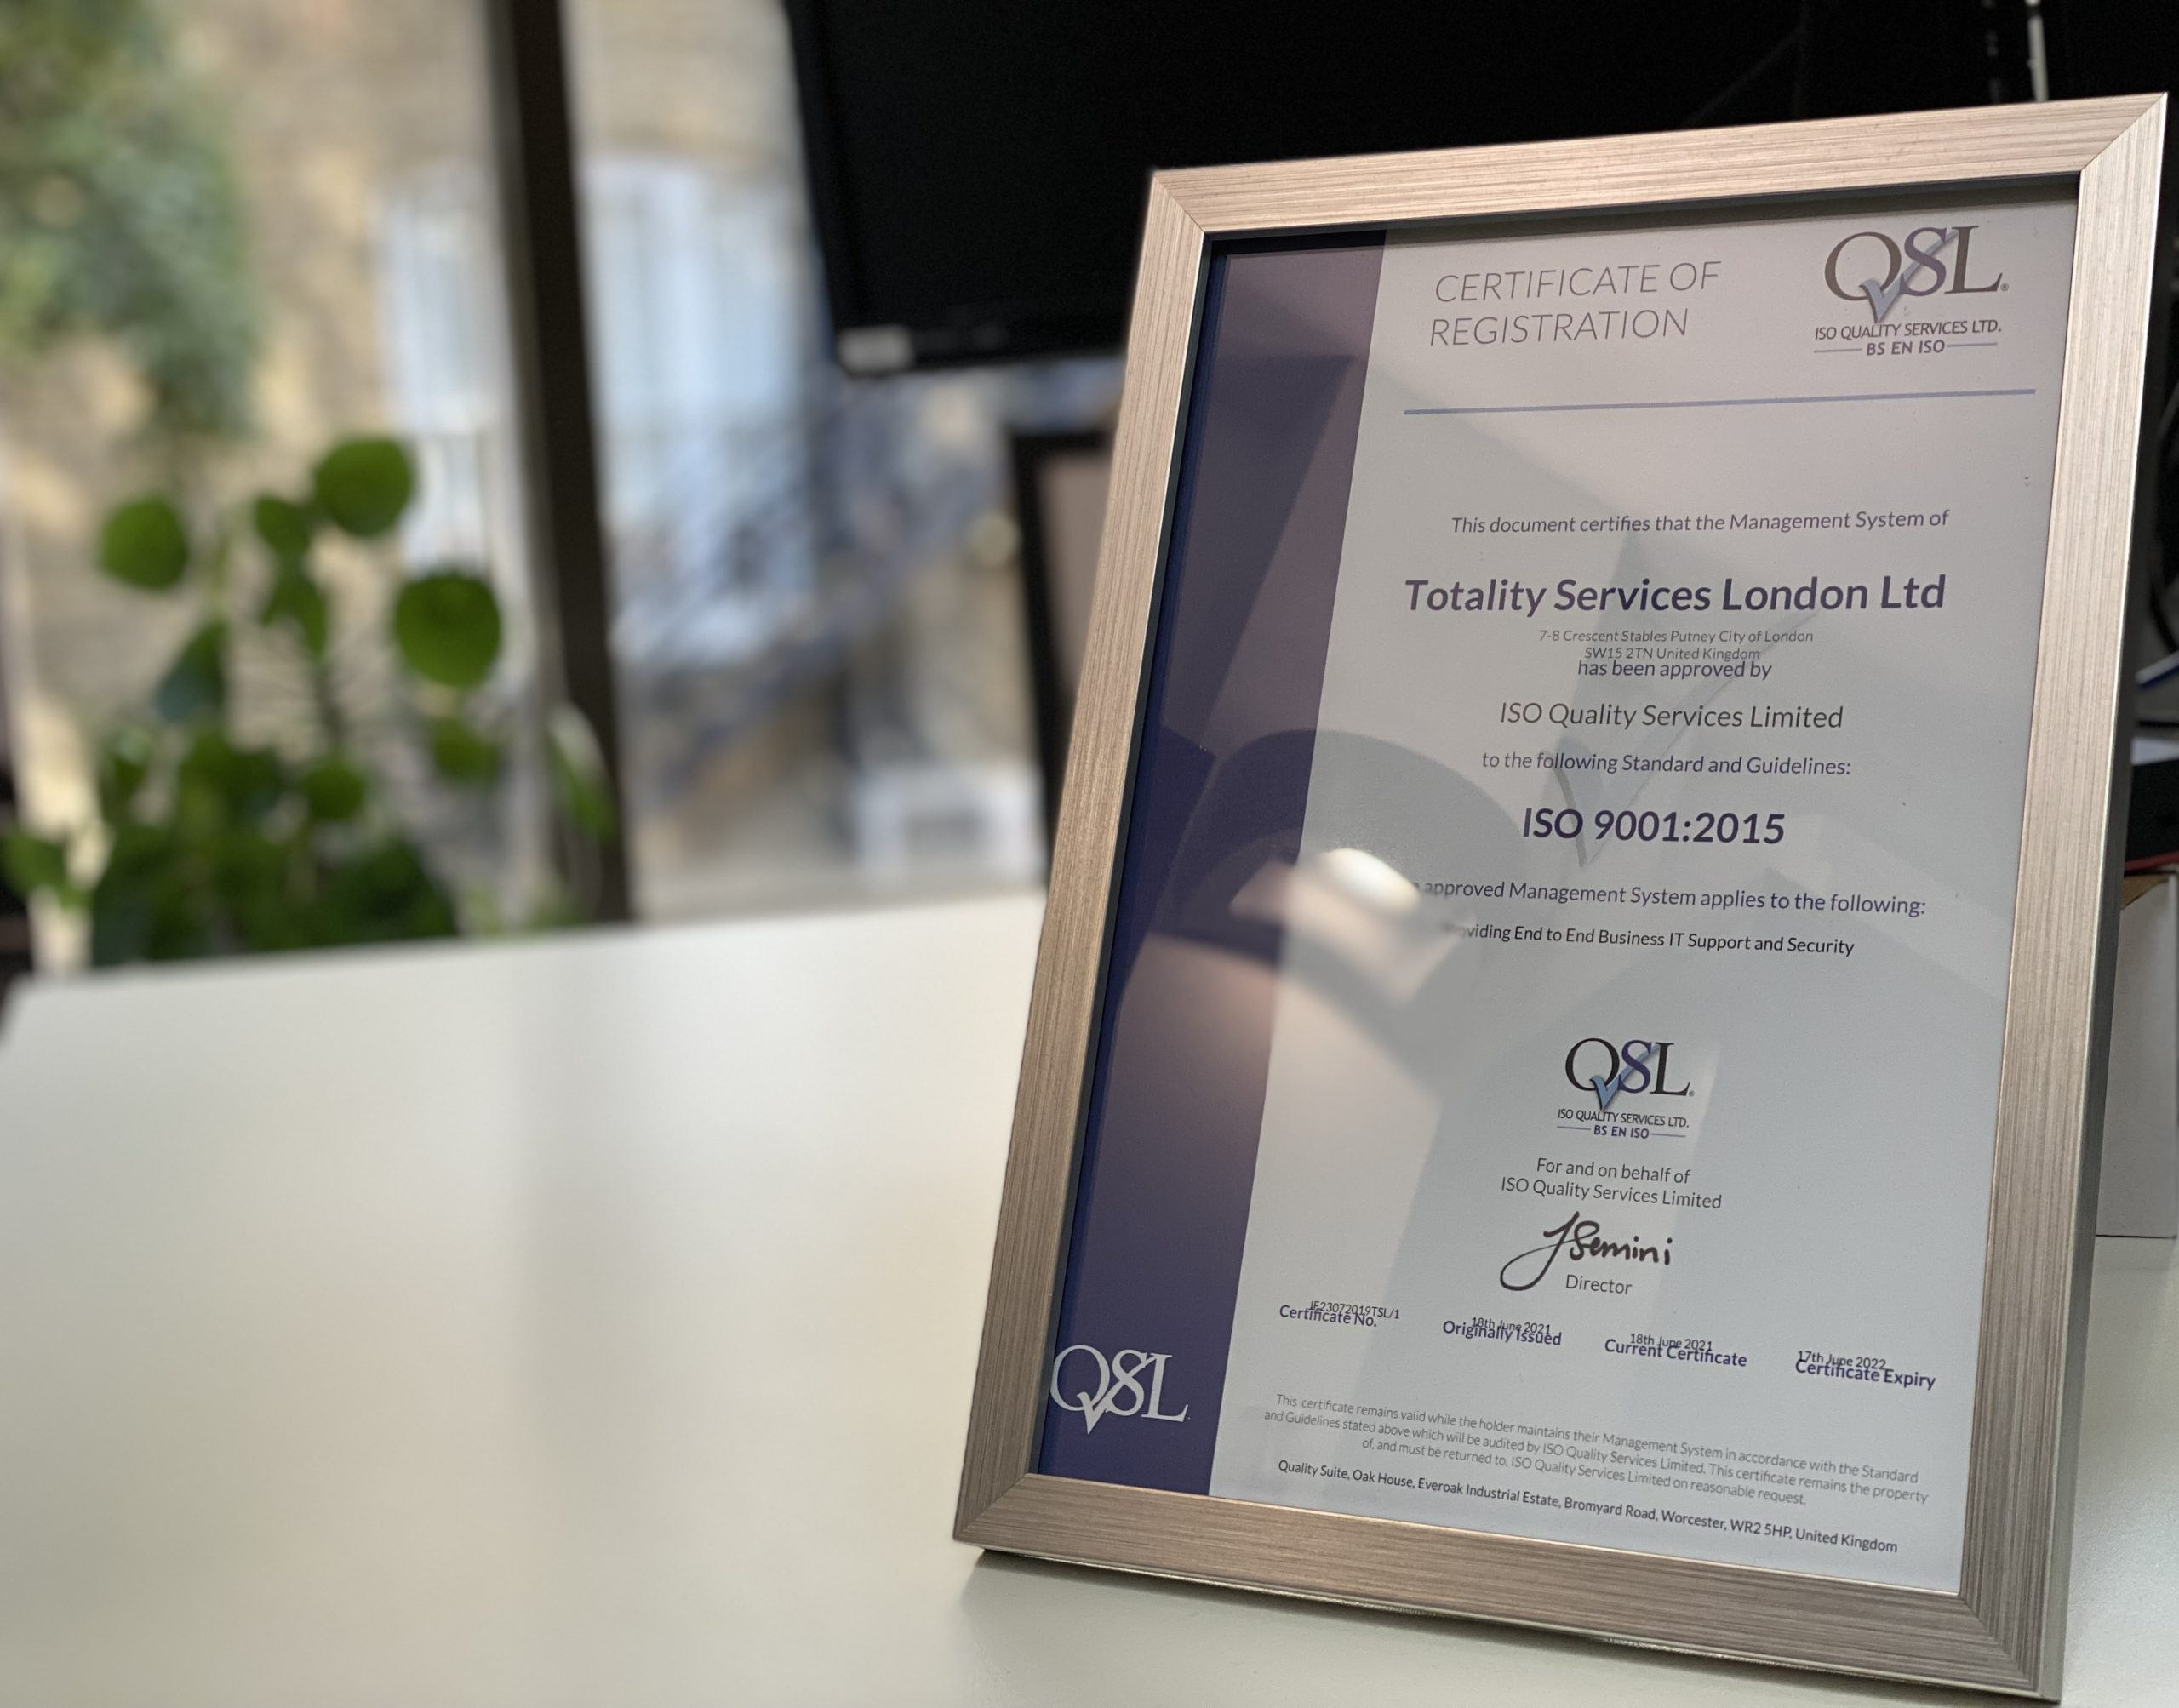 totality services Awarded ISO 9001 Quality Management Certification